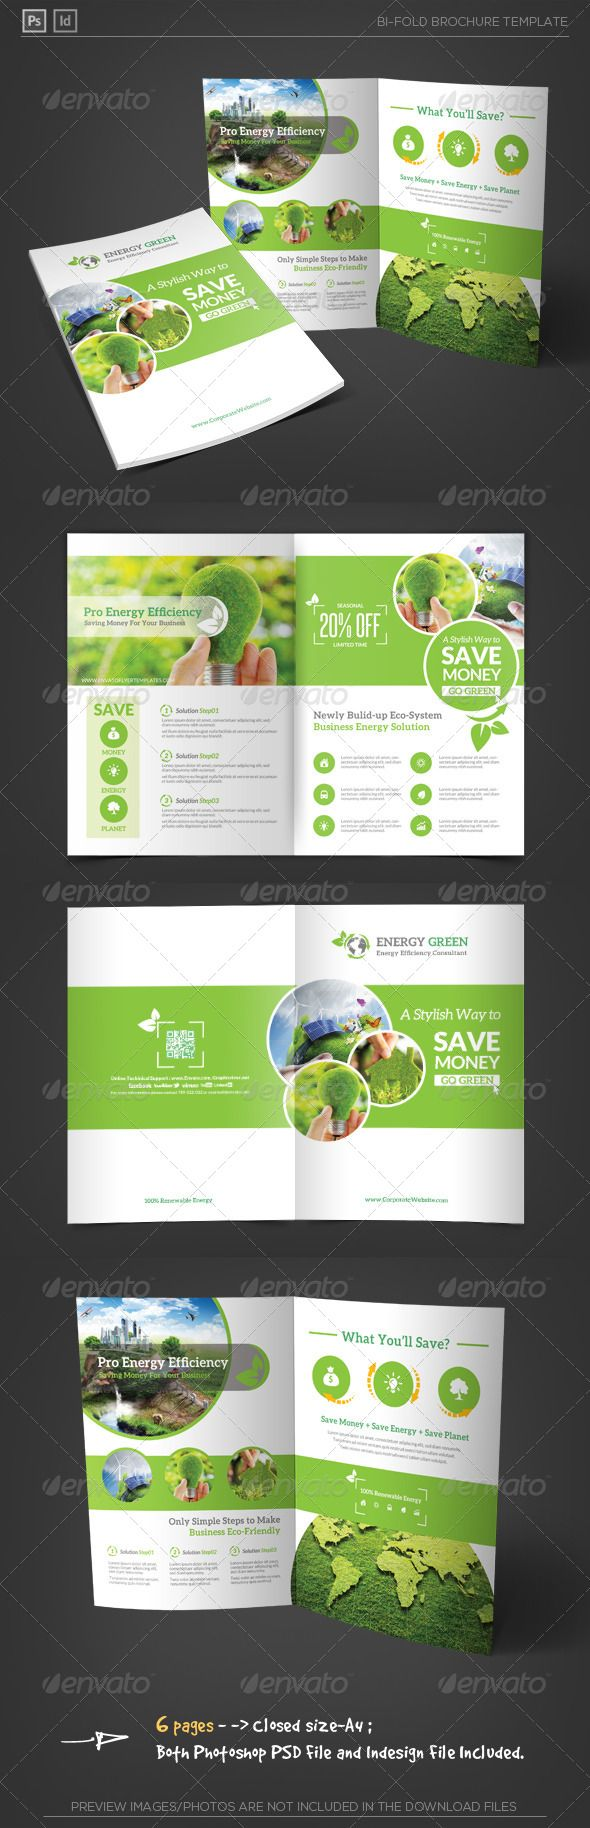 Famous 10 Best Resumes Thin 10 Label Template Square 1099 Form Template 13b Porting Templates Young 16 Team Bracket Template Dark1st Birthday Invite Templates Energy Saving Corporate Bifold Brochure | Print..., Nature And ..